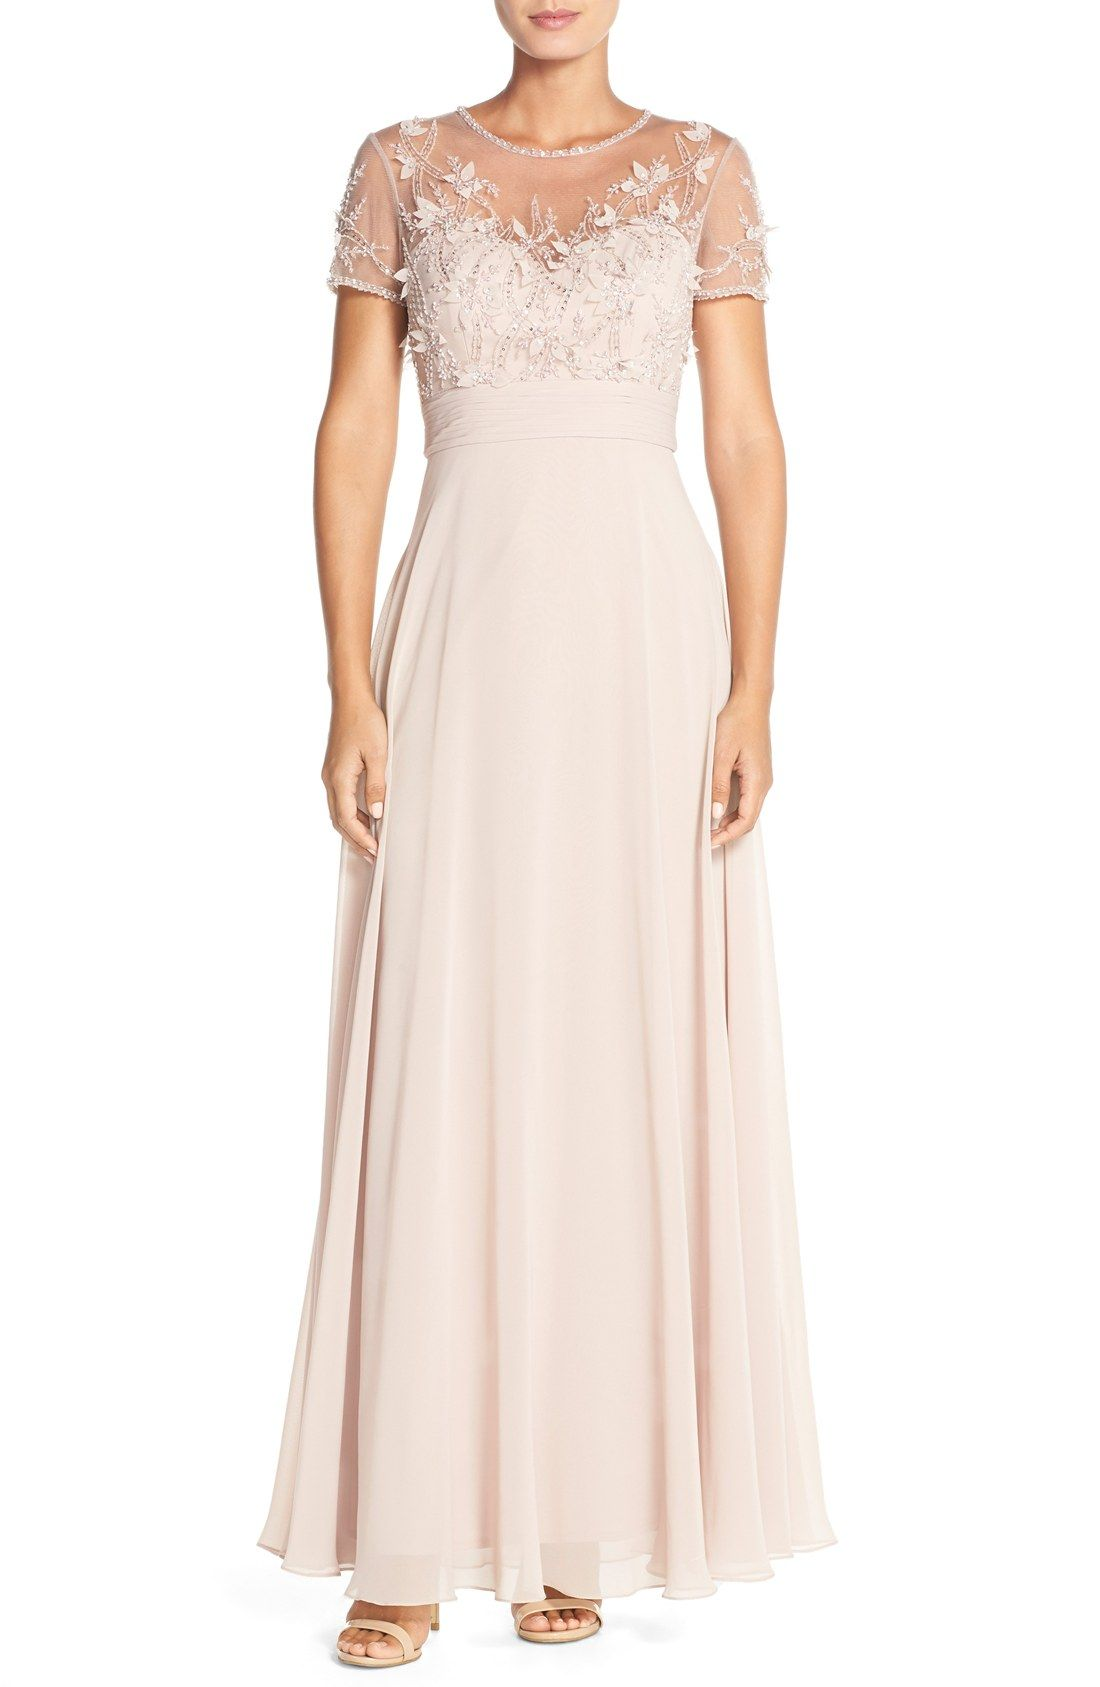 JS Collections Embellished Mesh & Chiffon Gown | Dresses | Pinterest ...